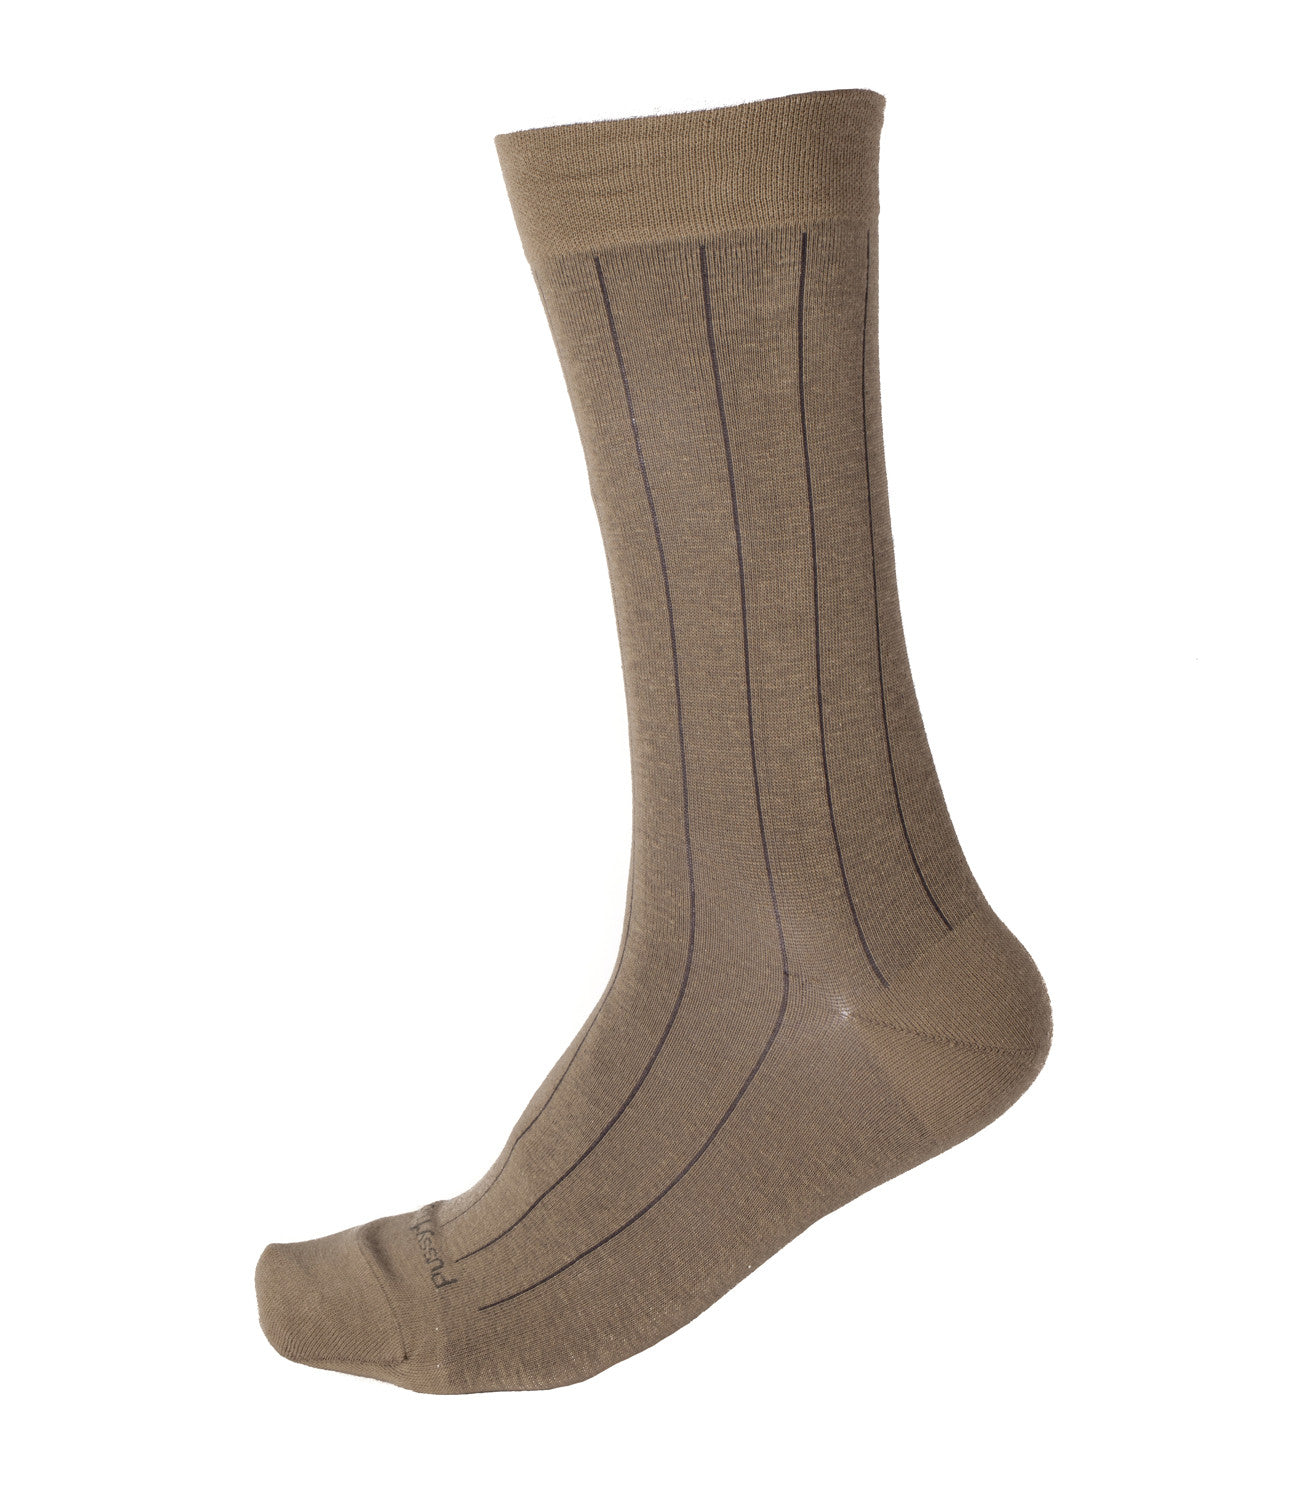 Pussyfoot Non Tight Broad Rib Health Socks - Stone